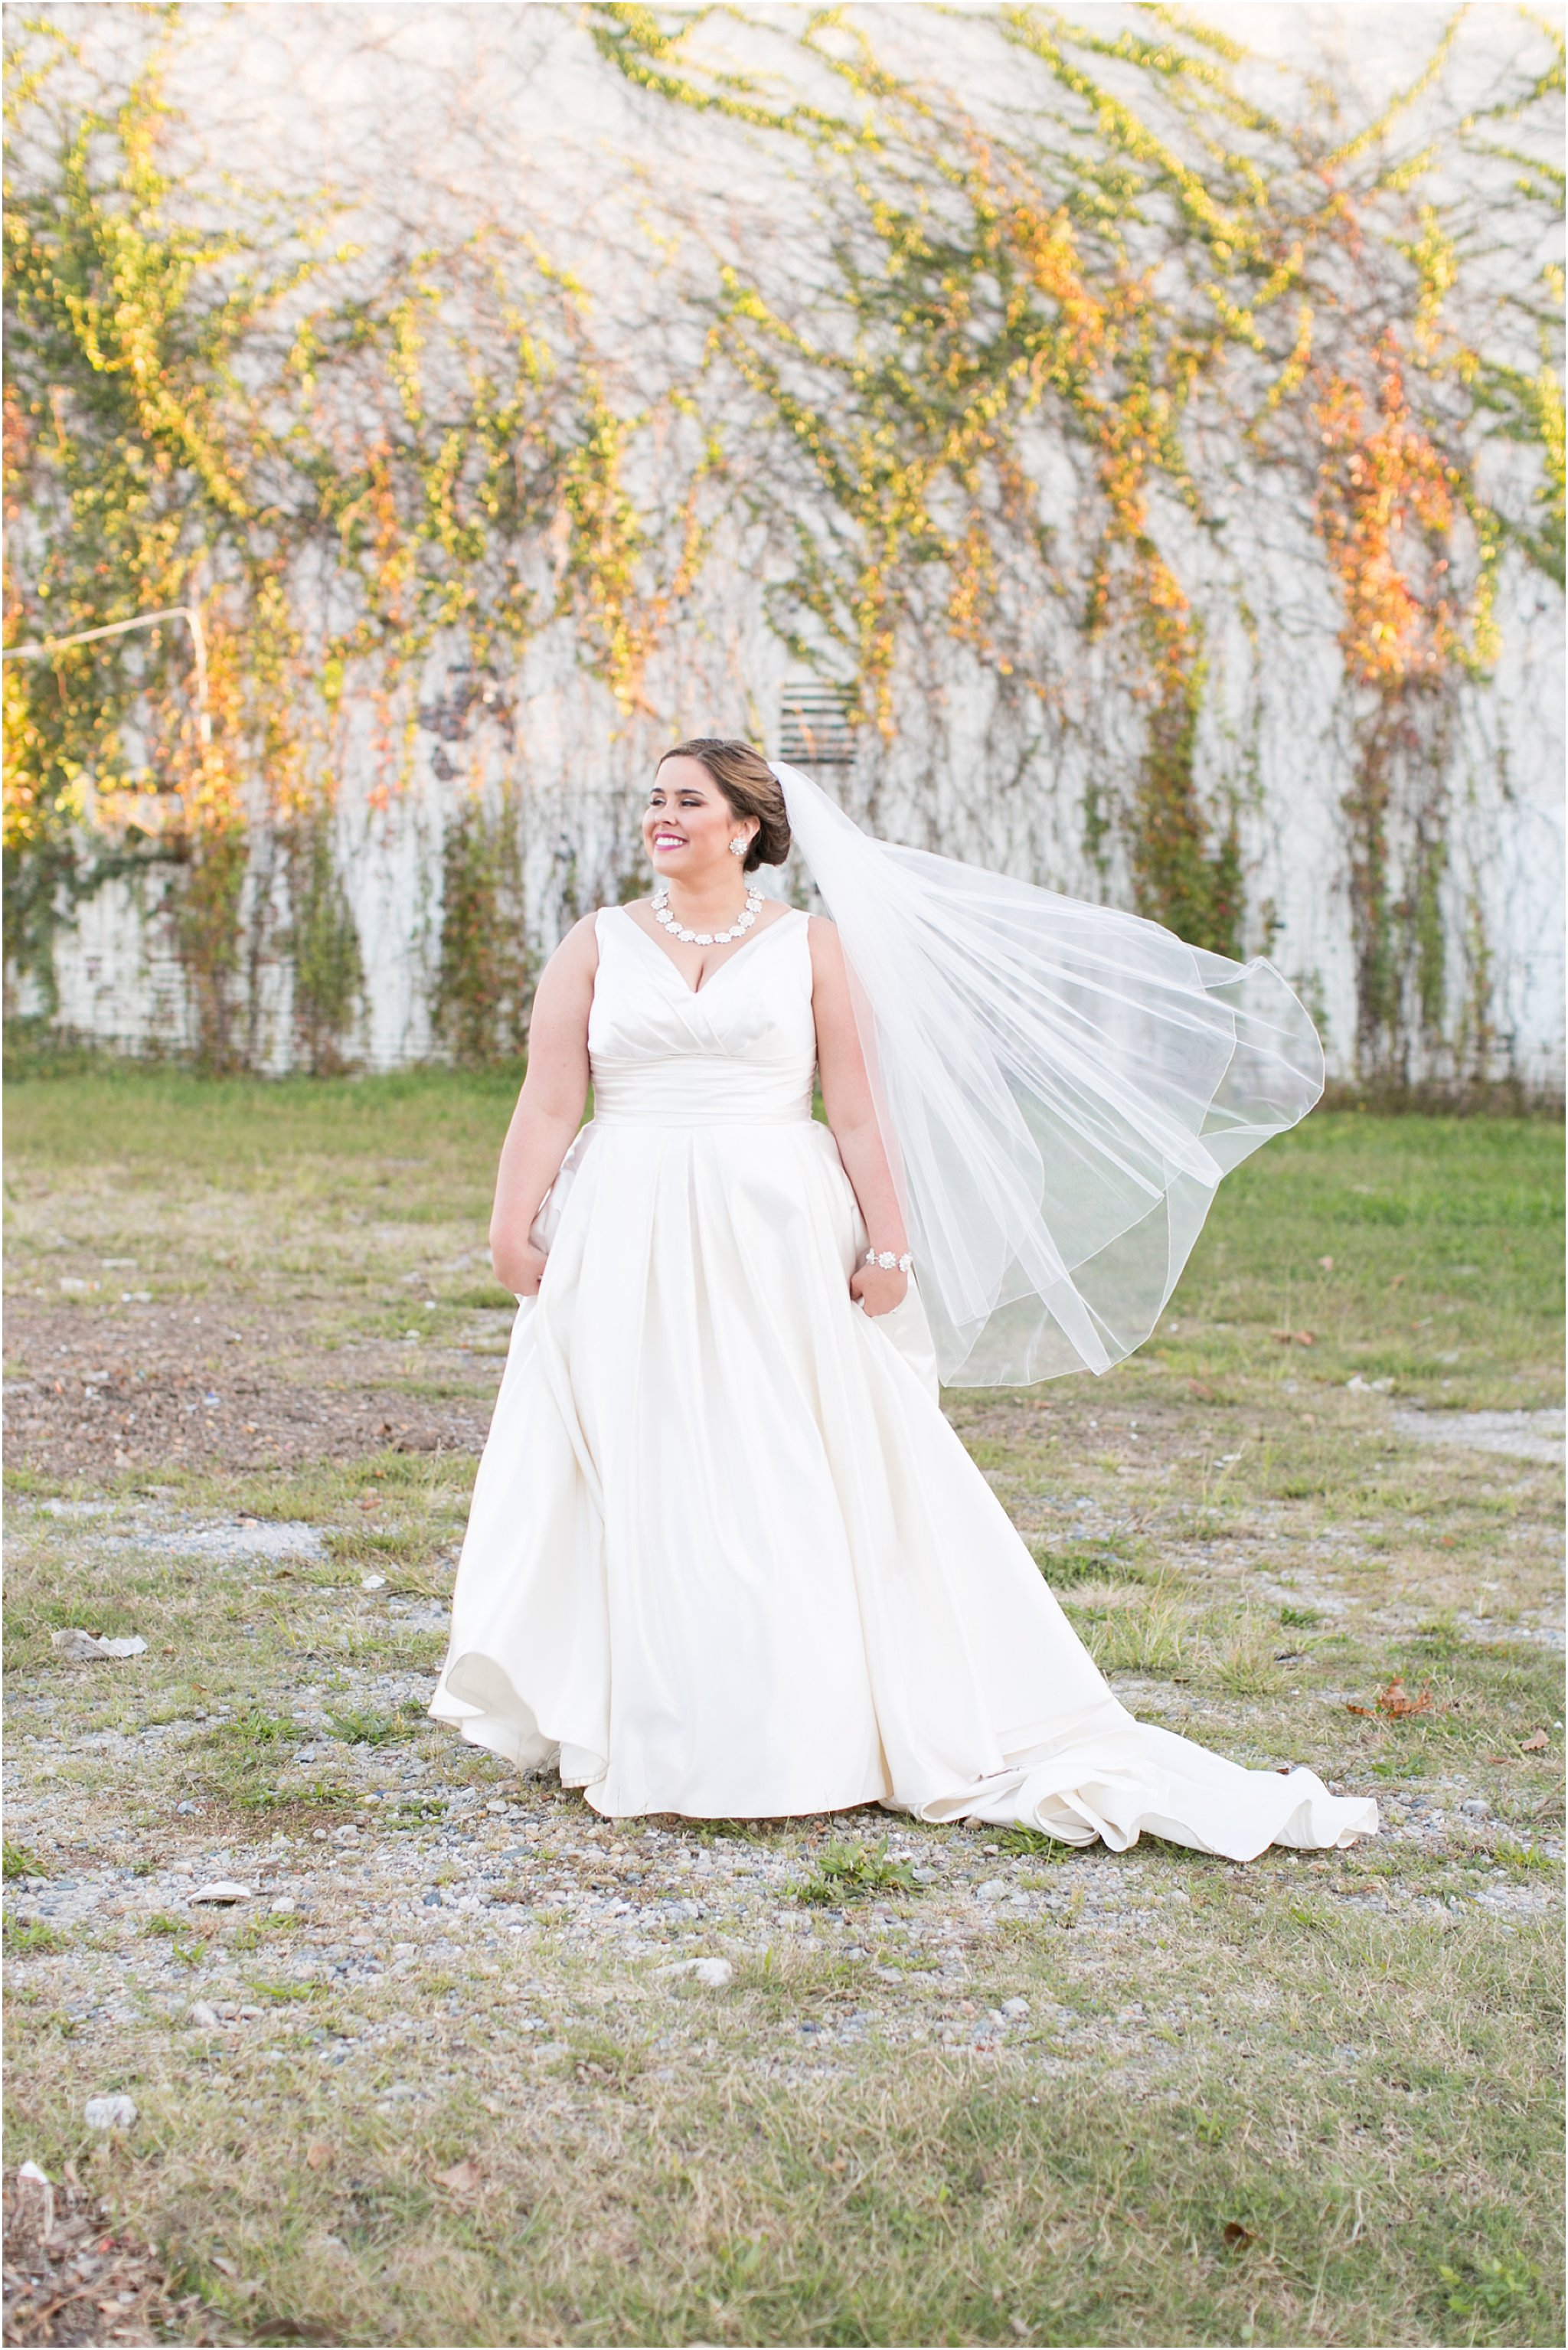 va_jessica_ryan_photography_virginia_wedding_norfolk_harrison_opera_house_norfolk_arts_district_portraits_3825